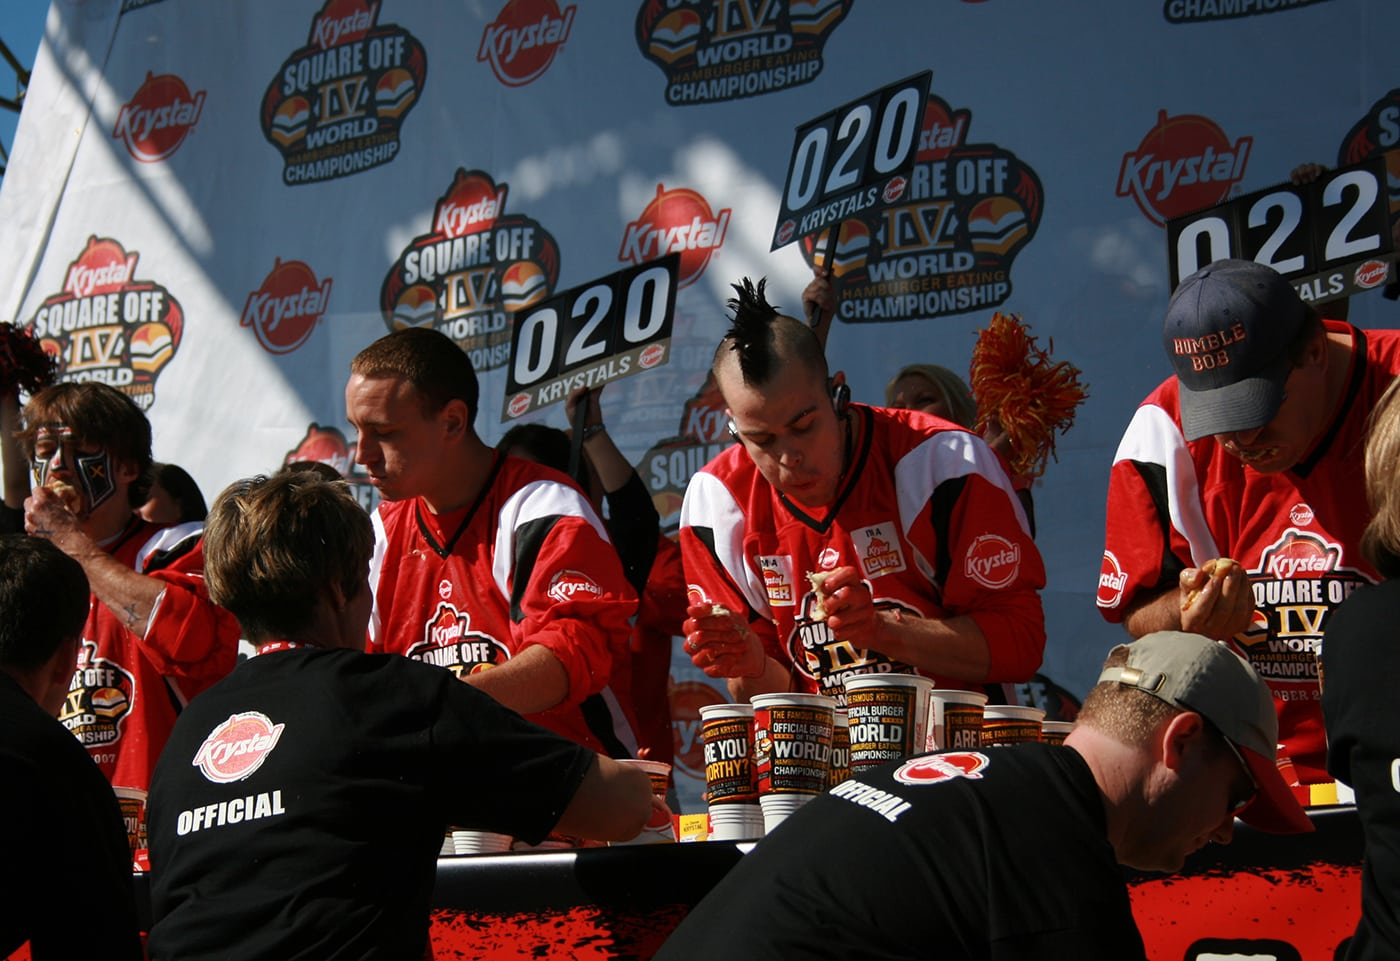 Krystal Square Off IV hamburger eating contest in Chattanooga, Tennessee.